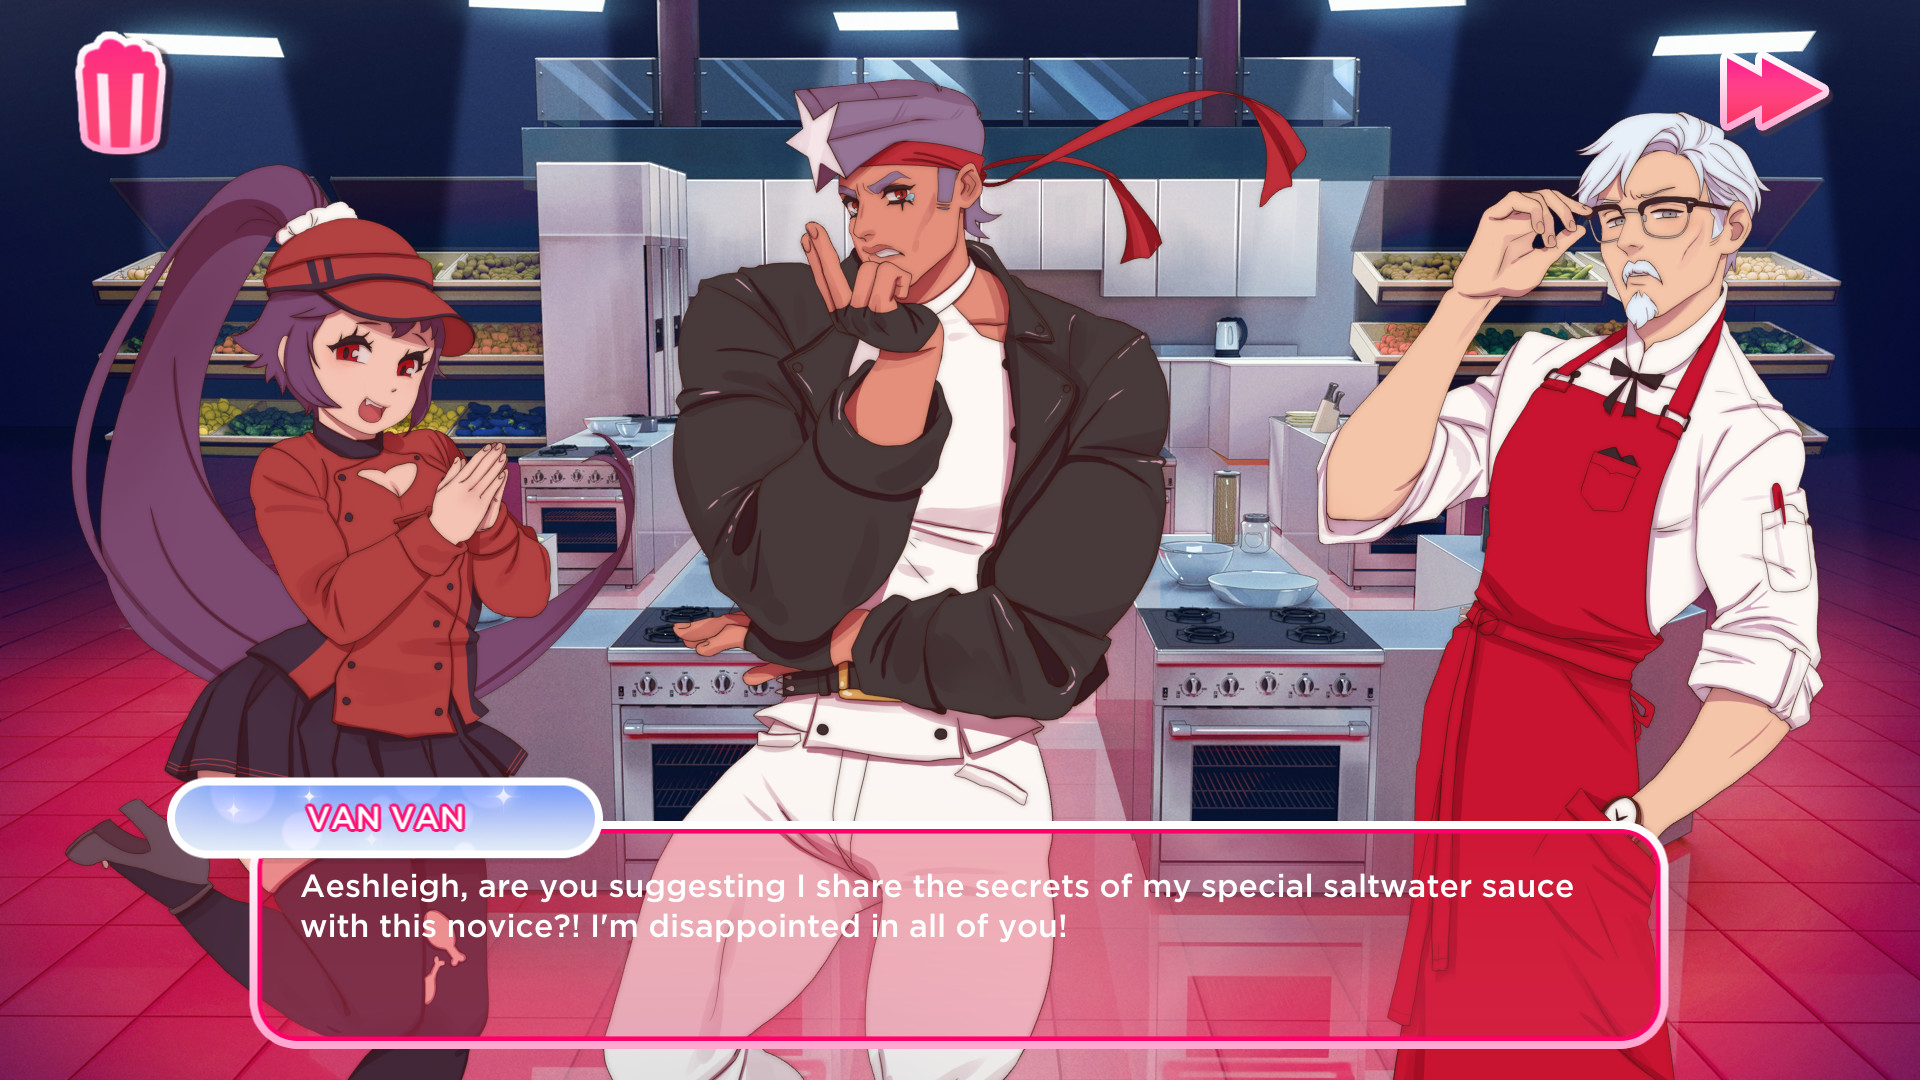 KFC actually is publishing a dating sim on steam